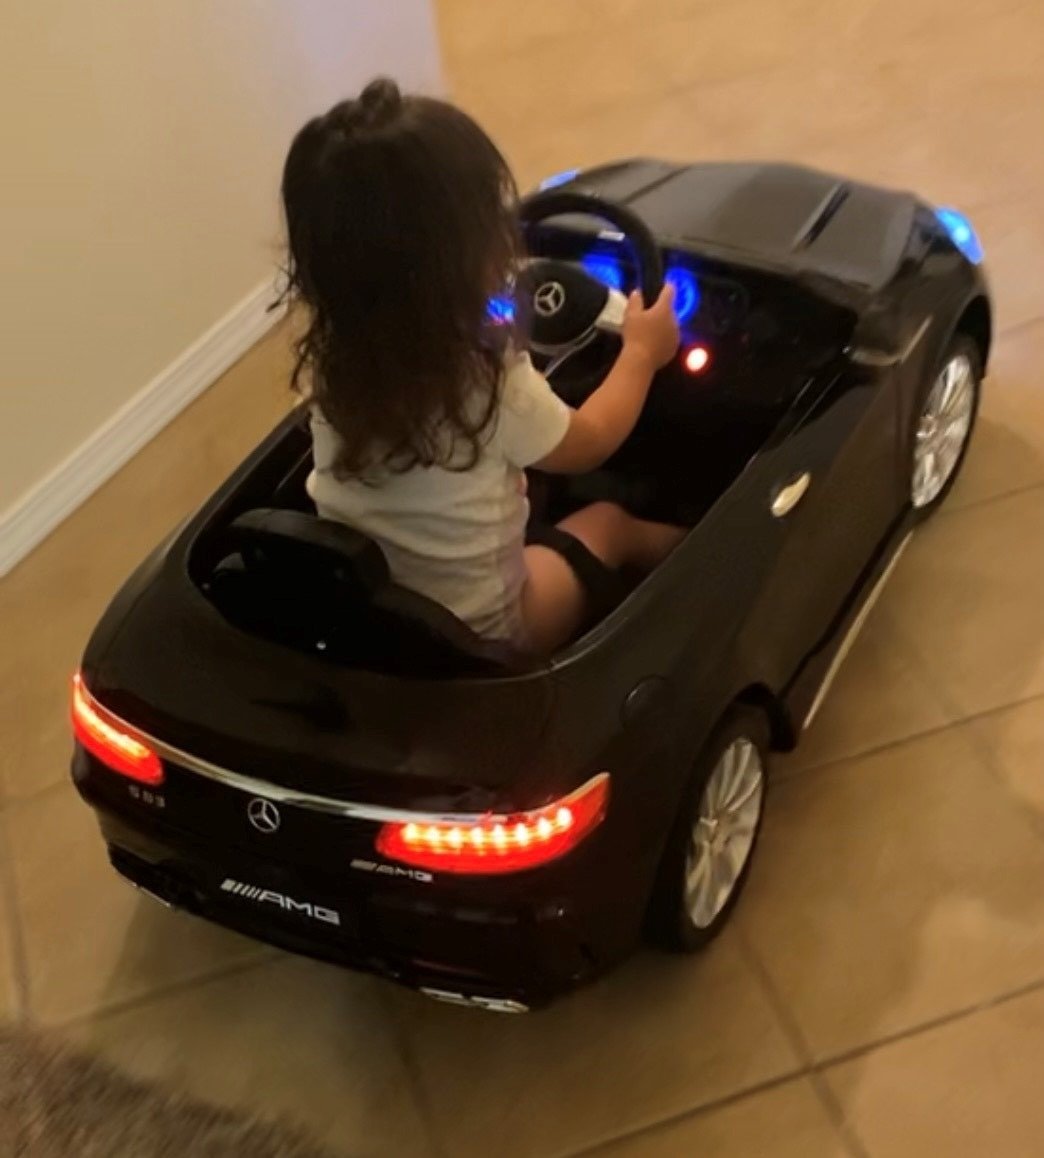 Mercedes Benz Licensed  Electric Kids Ride on Cars Remote Control, Black photo review